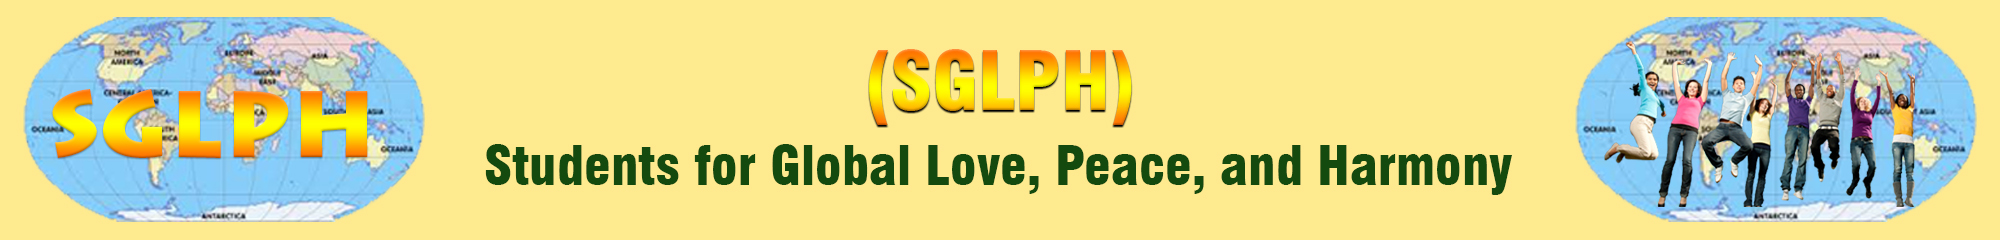 SGLPH: Students for Global Love Peace and Harmony